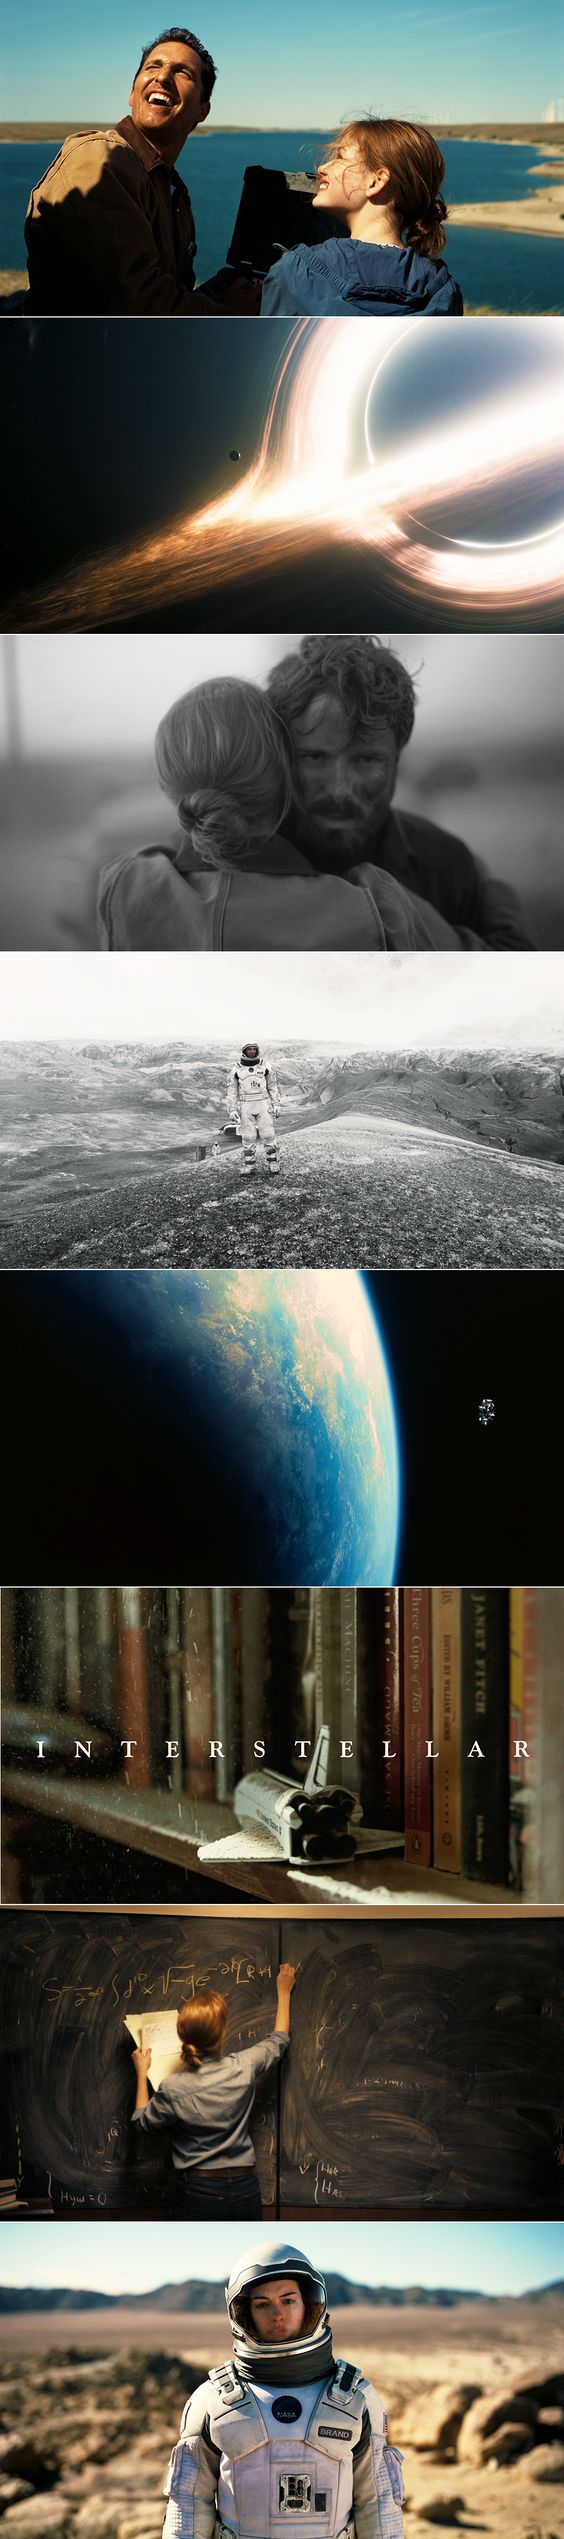 Interstellar Direct. by Christopher Nolan; Cinematography by Hoyte Van Hoytema. One of Nolan's best